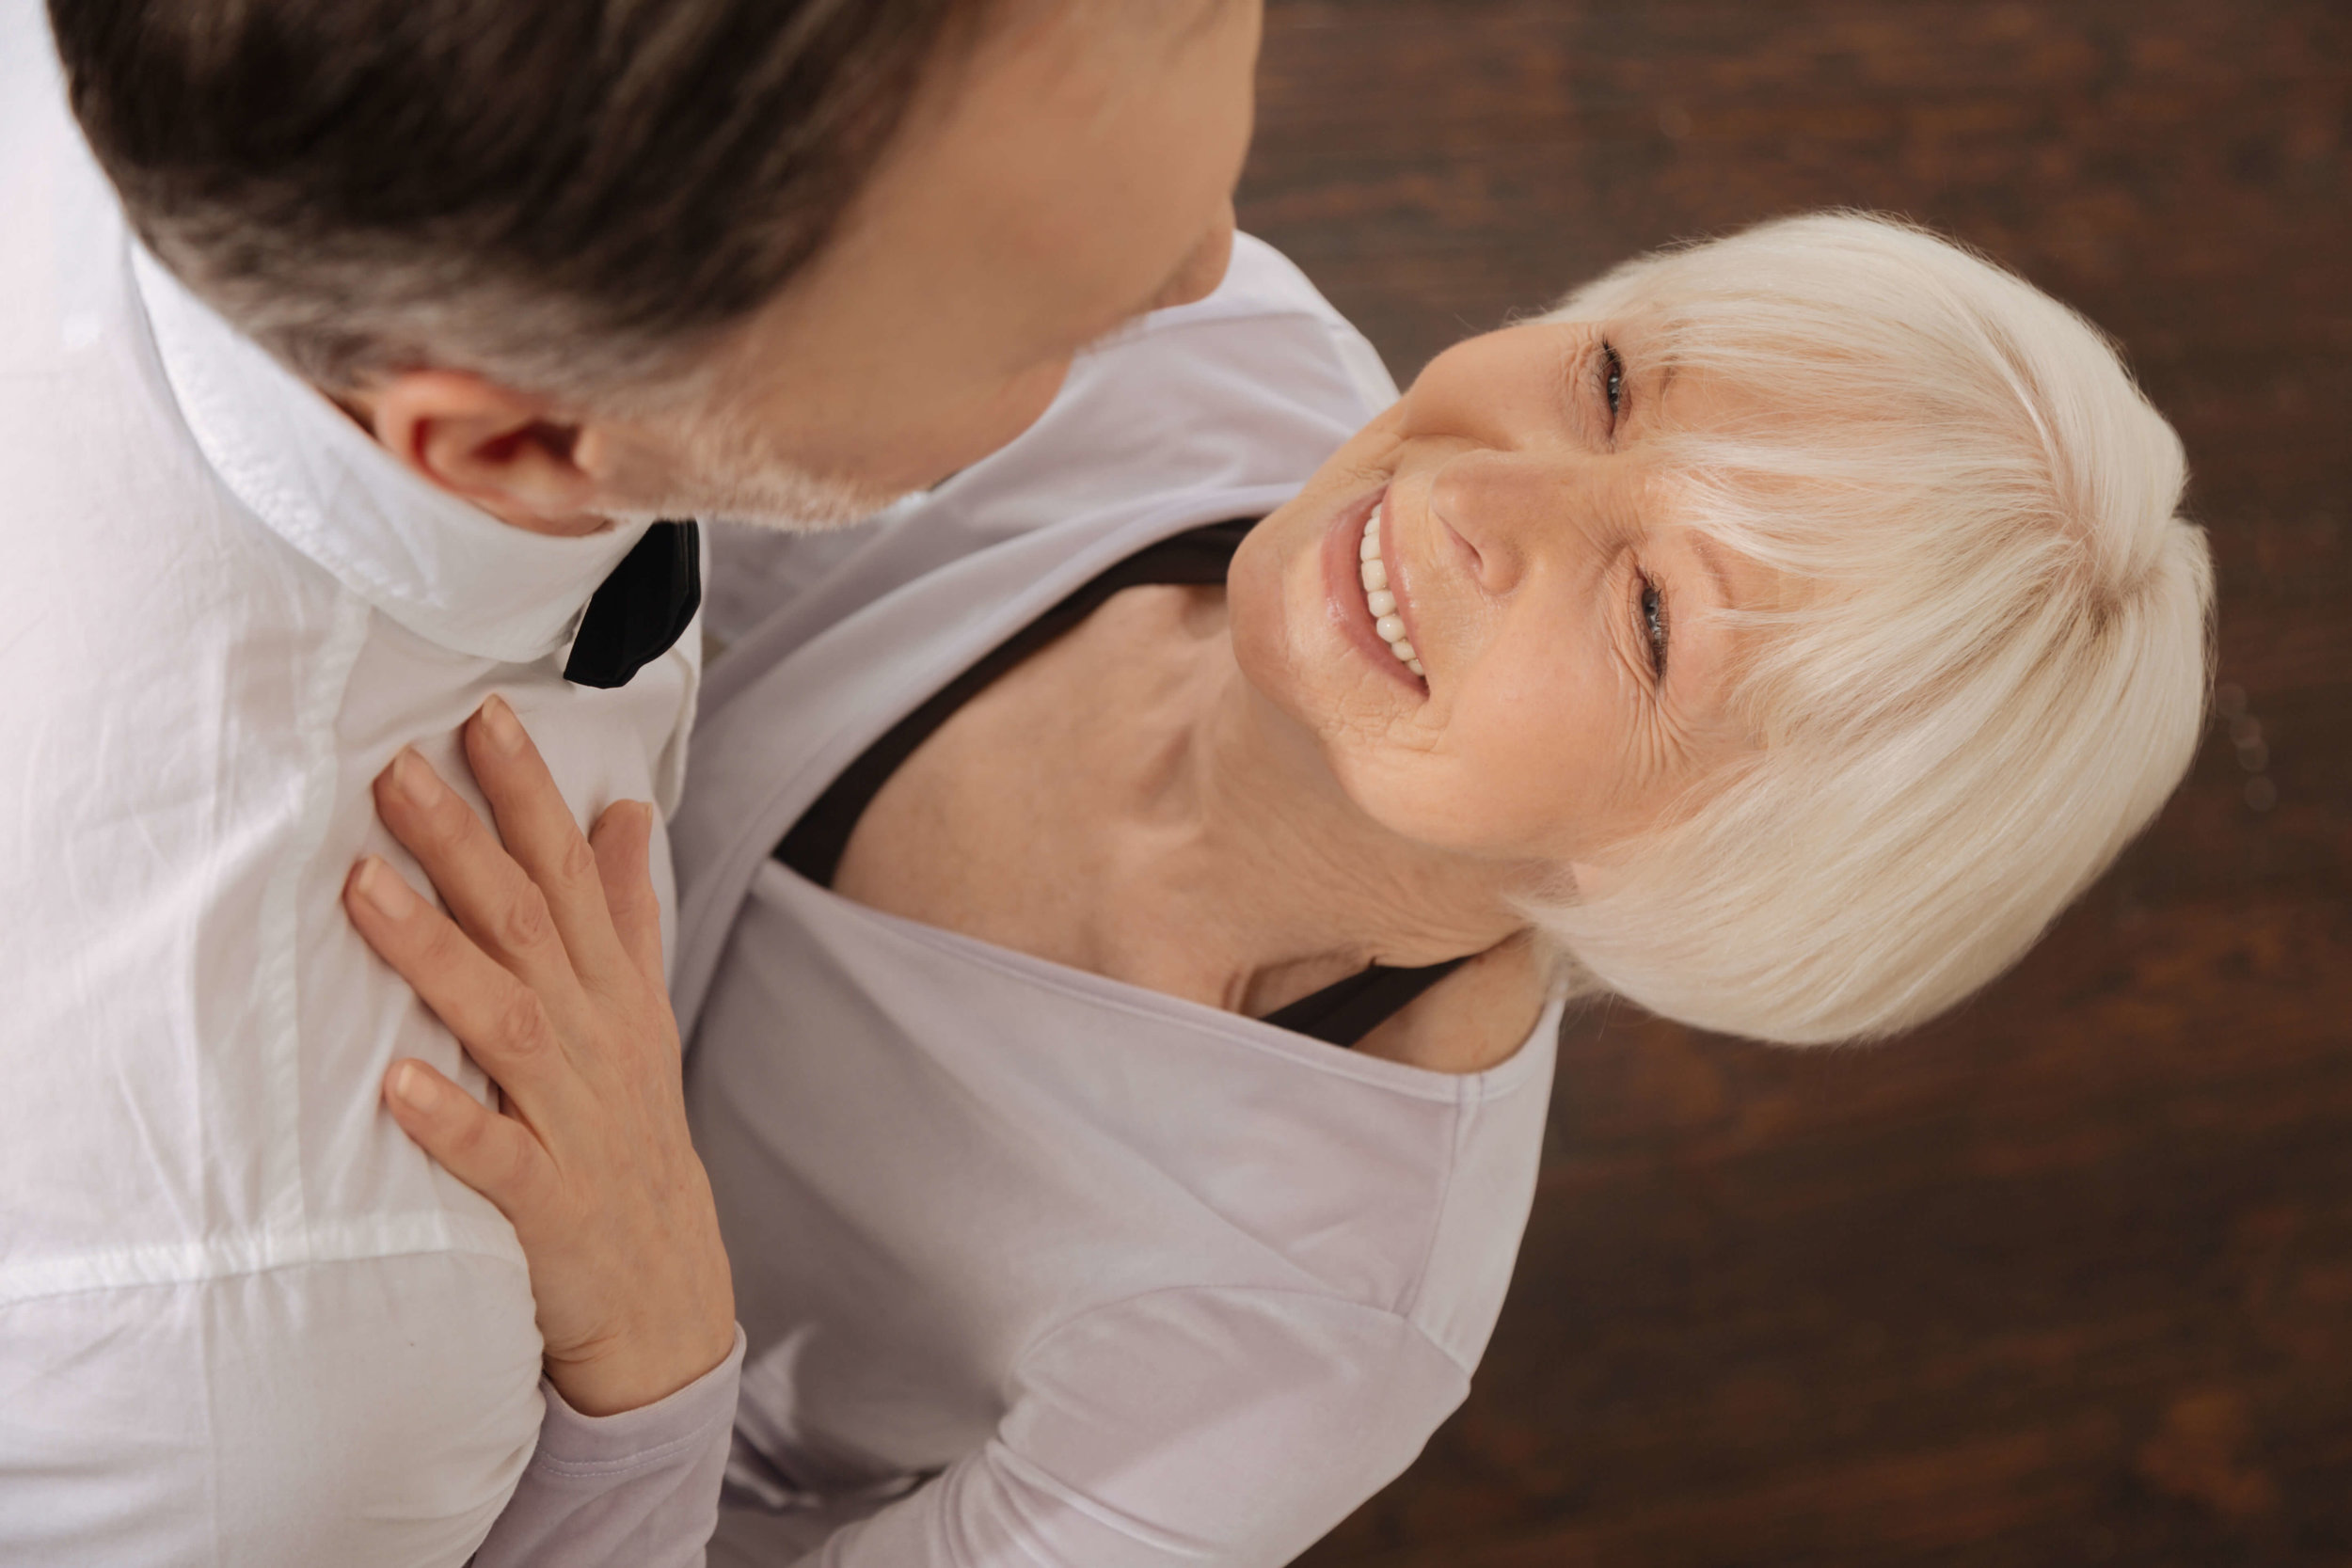 A senior couple taking ballroom dance classes together. Woman looks into man's eyes